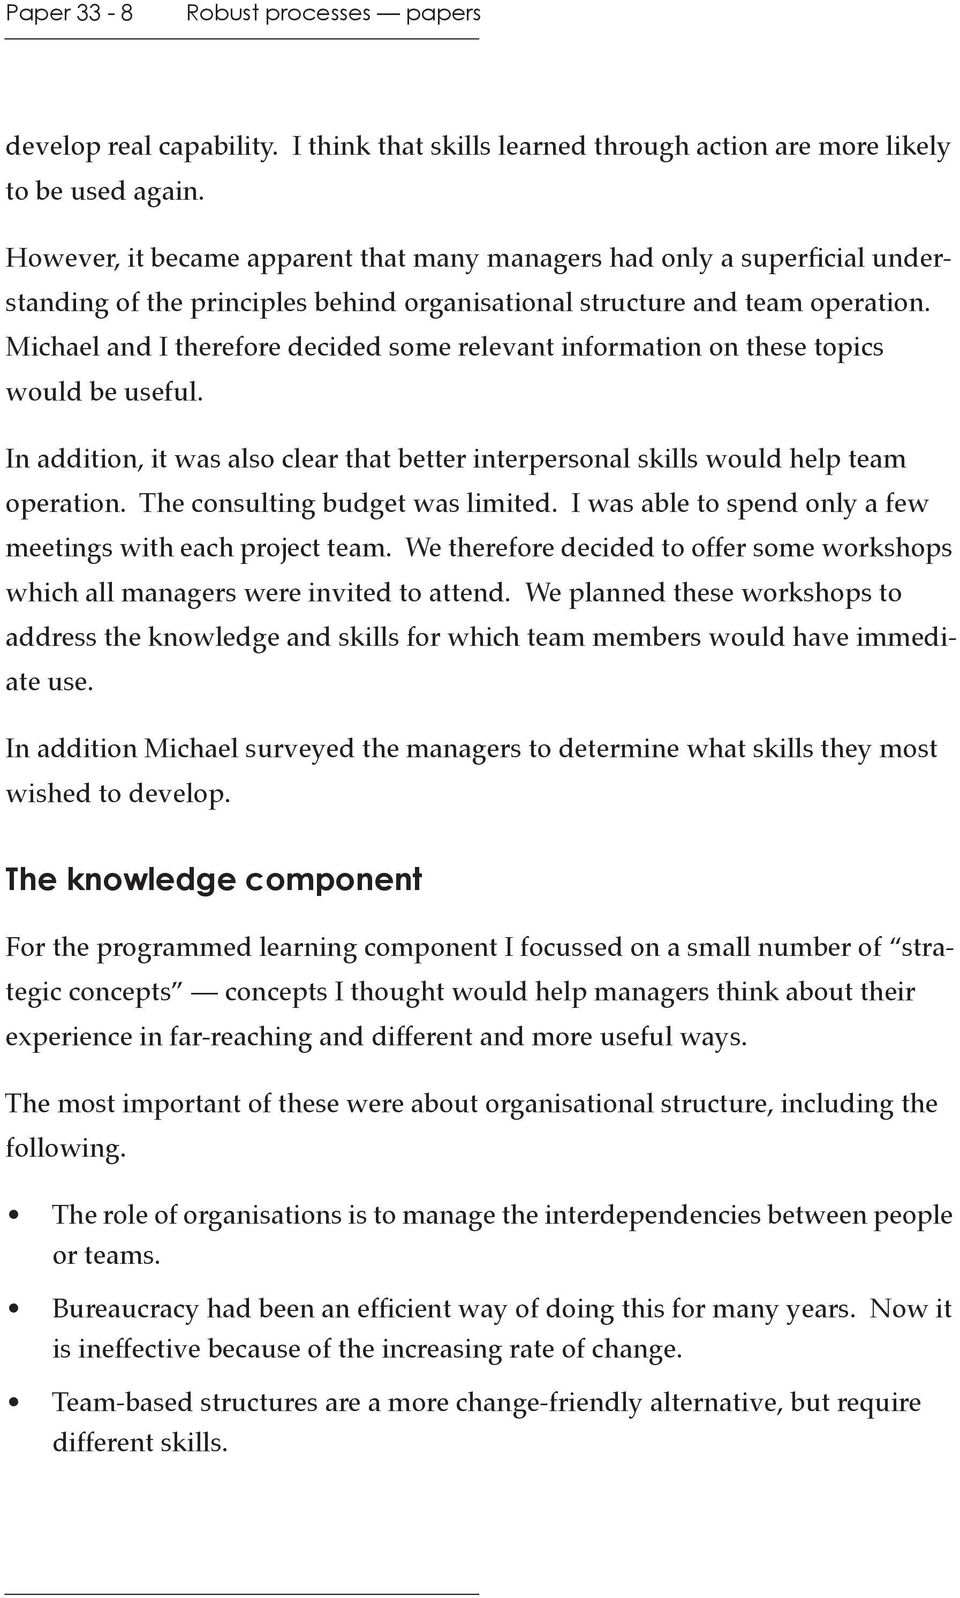 Michael and I therefore decided some relevant information on these topics would be useful. In addition, it was also clear that better interpersonal skills would help team operation.